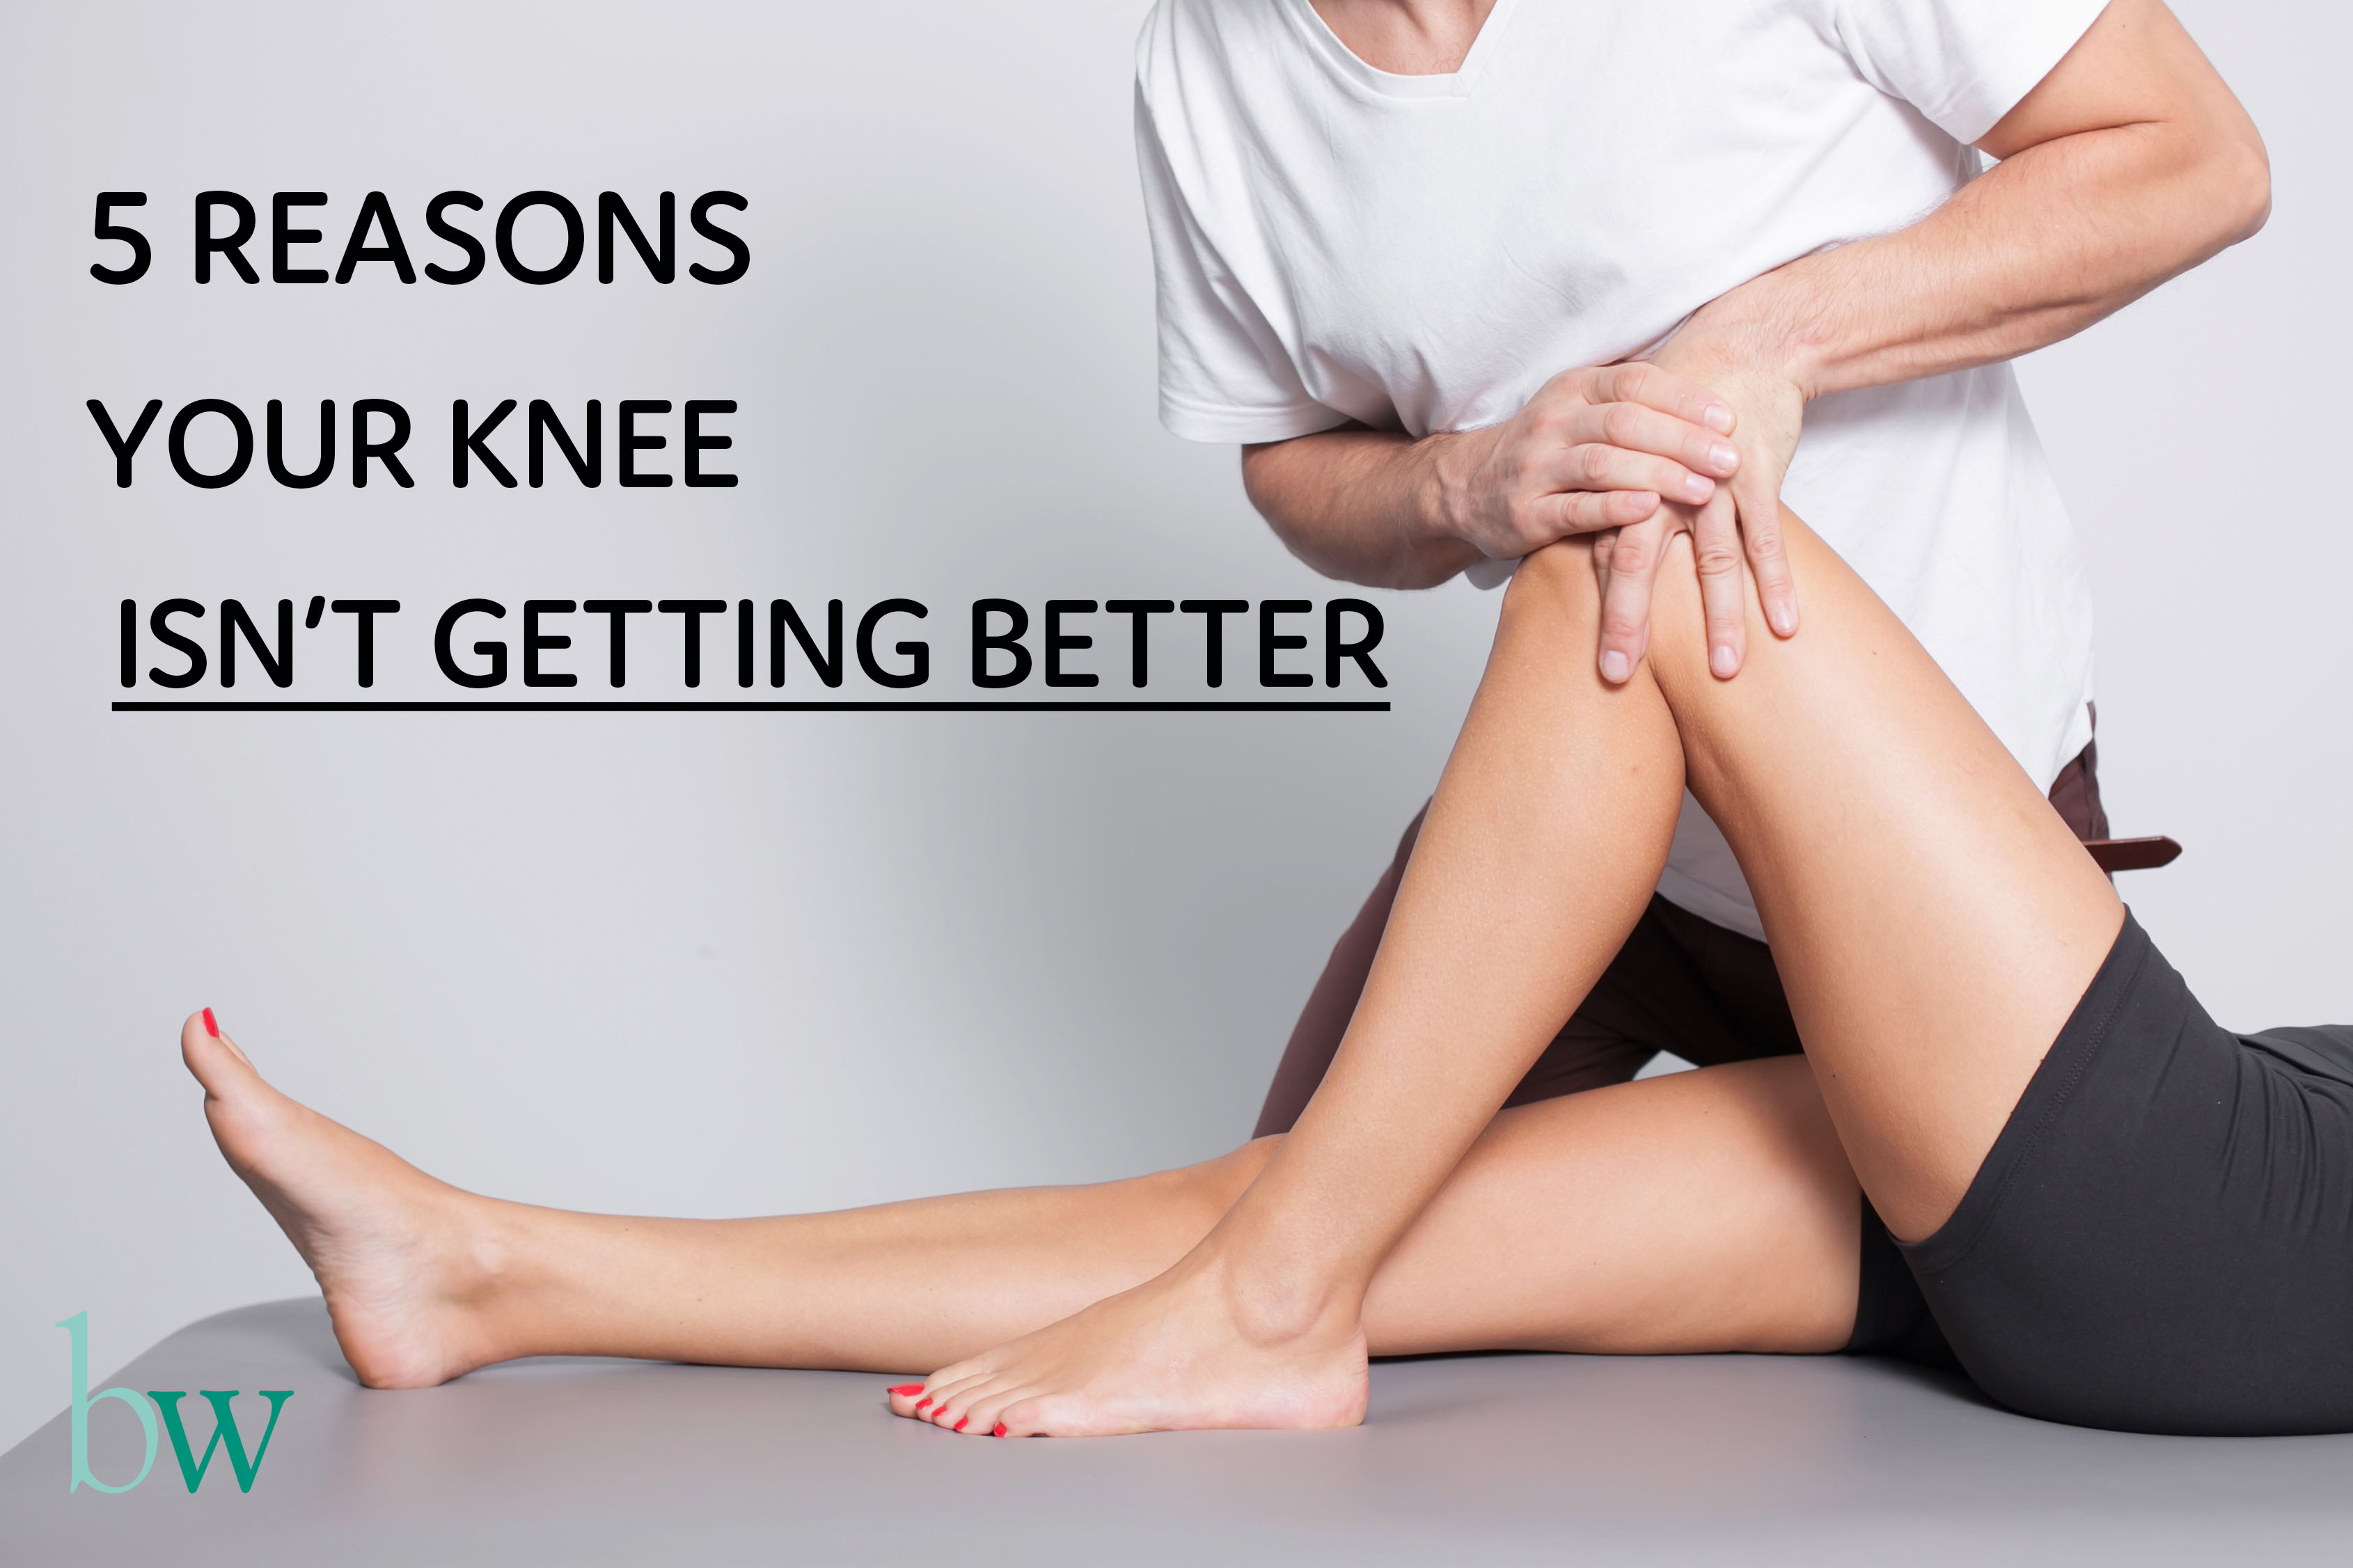 5 Reasons your knee isn't getting better - Knee Specialist Estelle Mitchell at Bodyworks Clinic Marbella